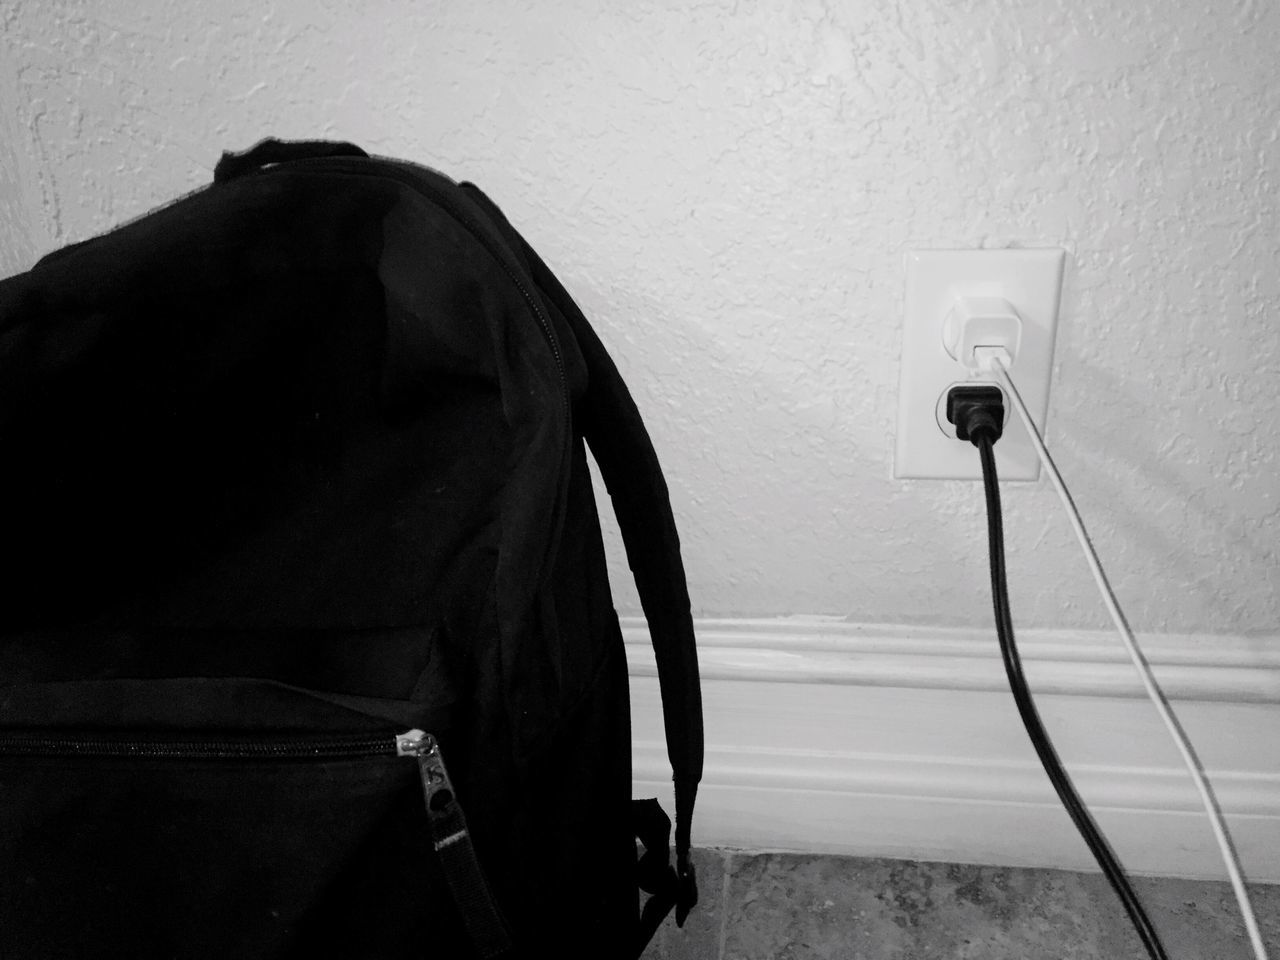 No People Outdoors Day Close-up Backpack Wall Charger Plug Outlet Break The Mold EyeEmNewHere